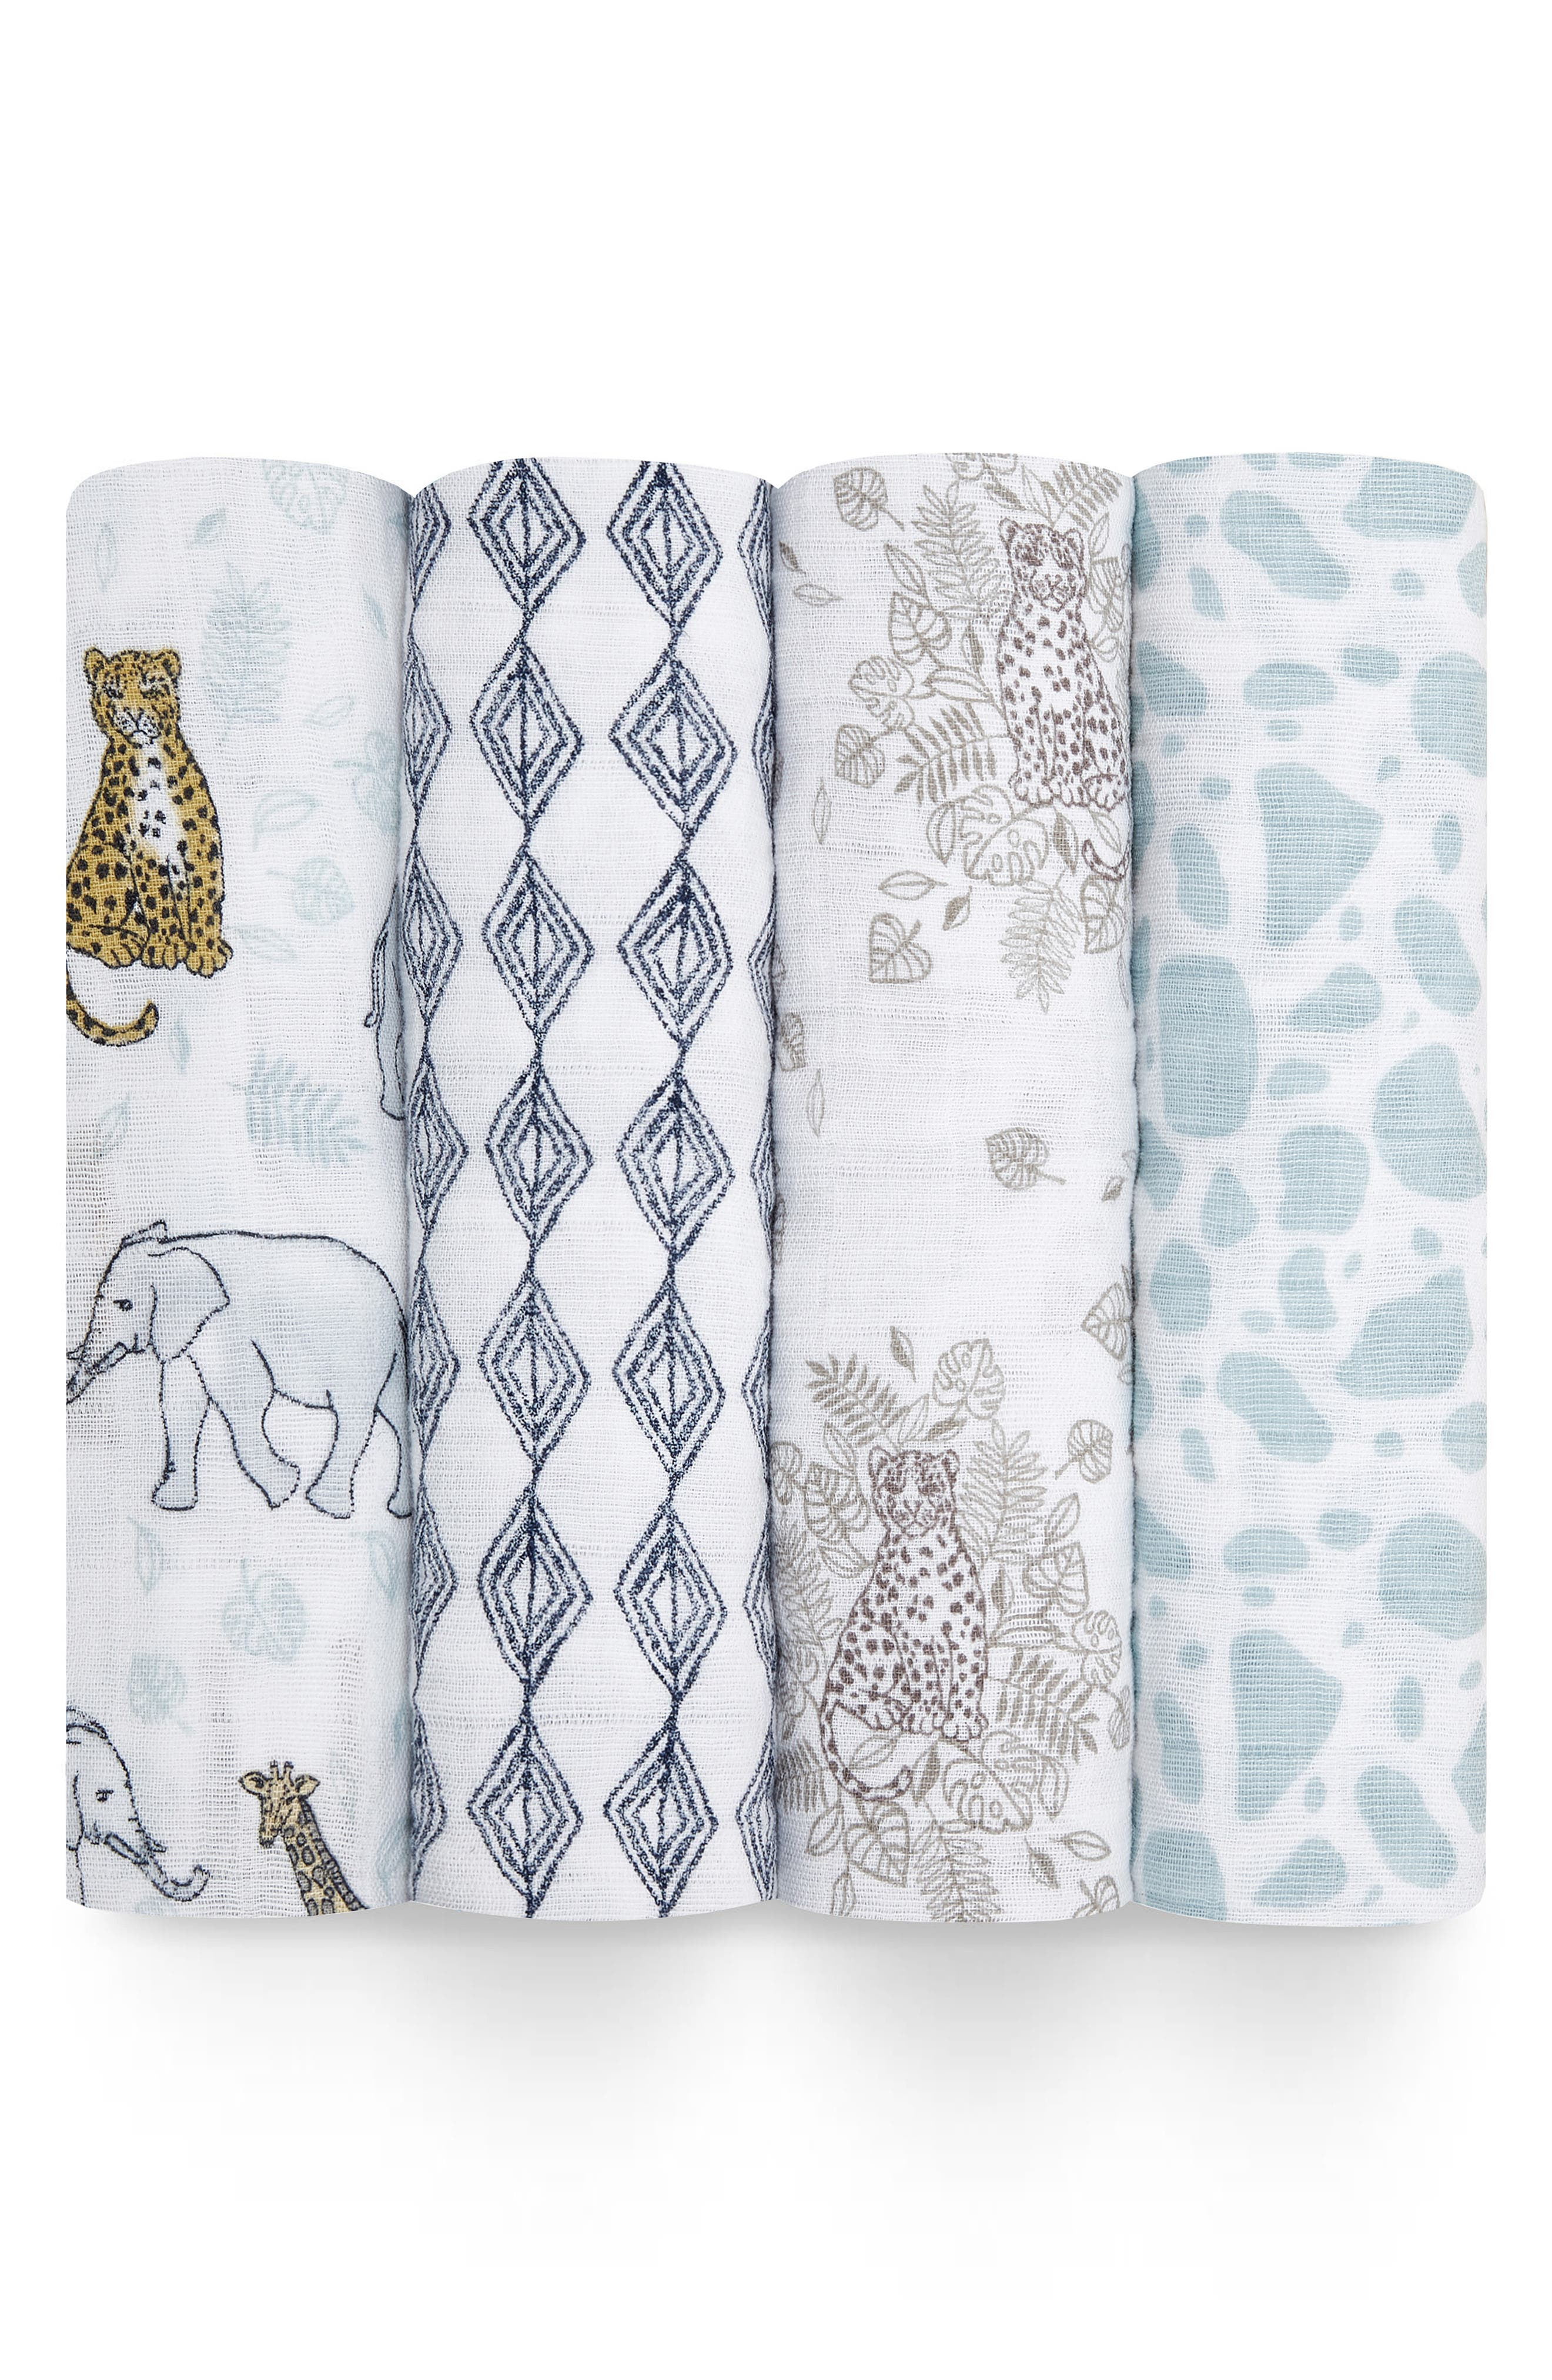 100/% Cotton Muslin Large 47 X 47 inch Anais Classic Swaddle Baby Blanket 4 Pack Llamas and Cactus Aden Trail Blooms